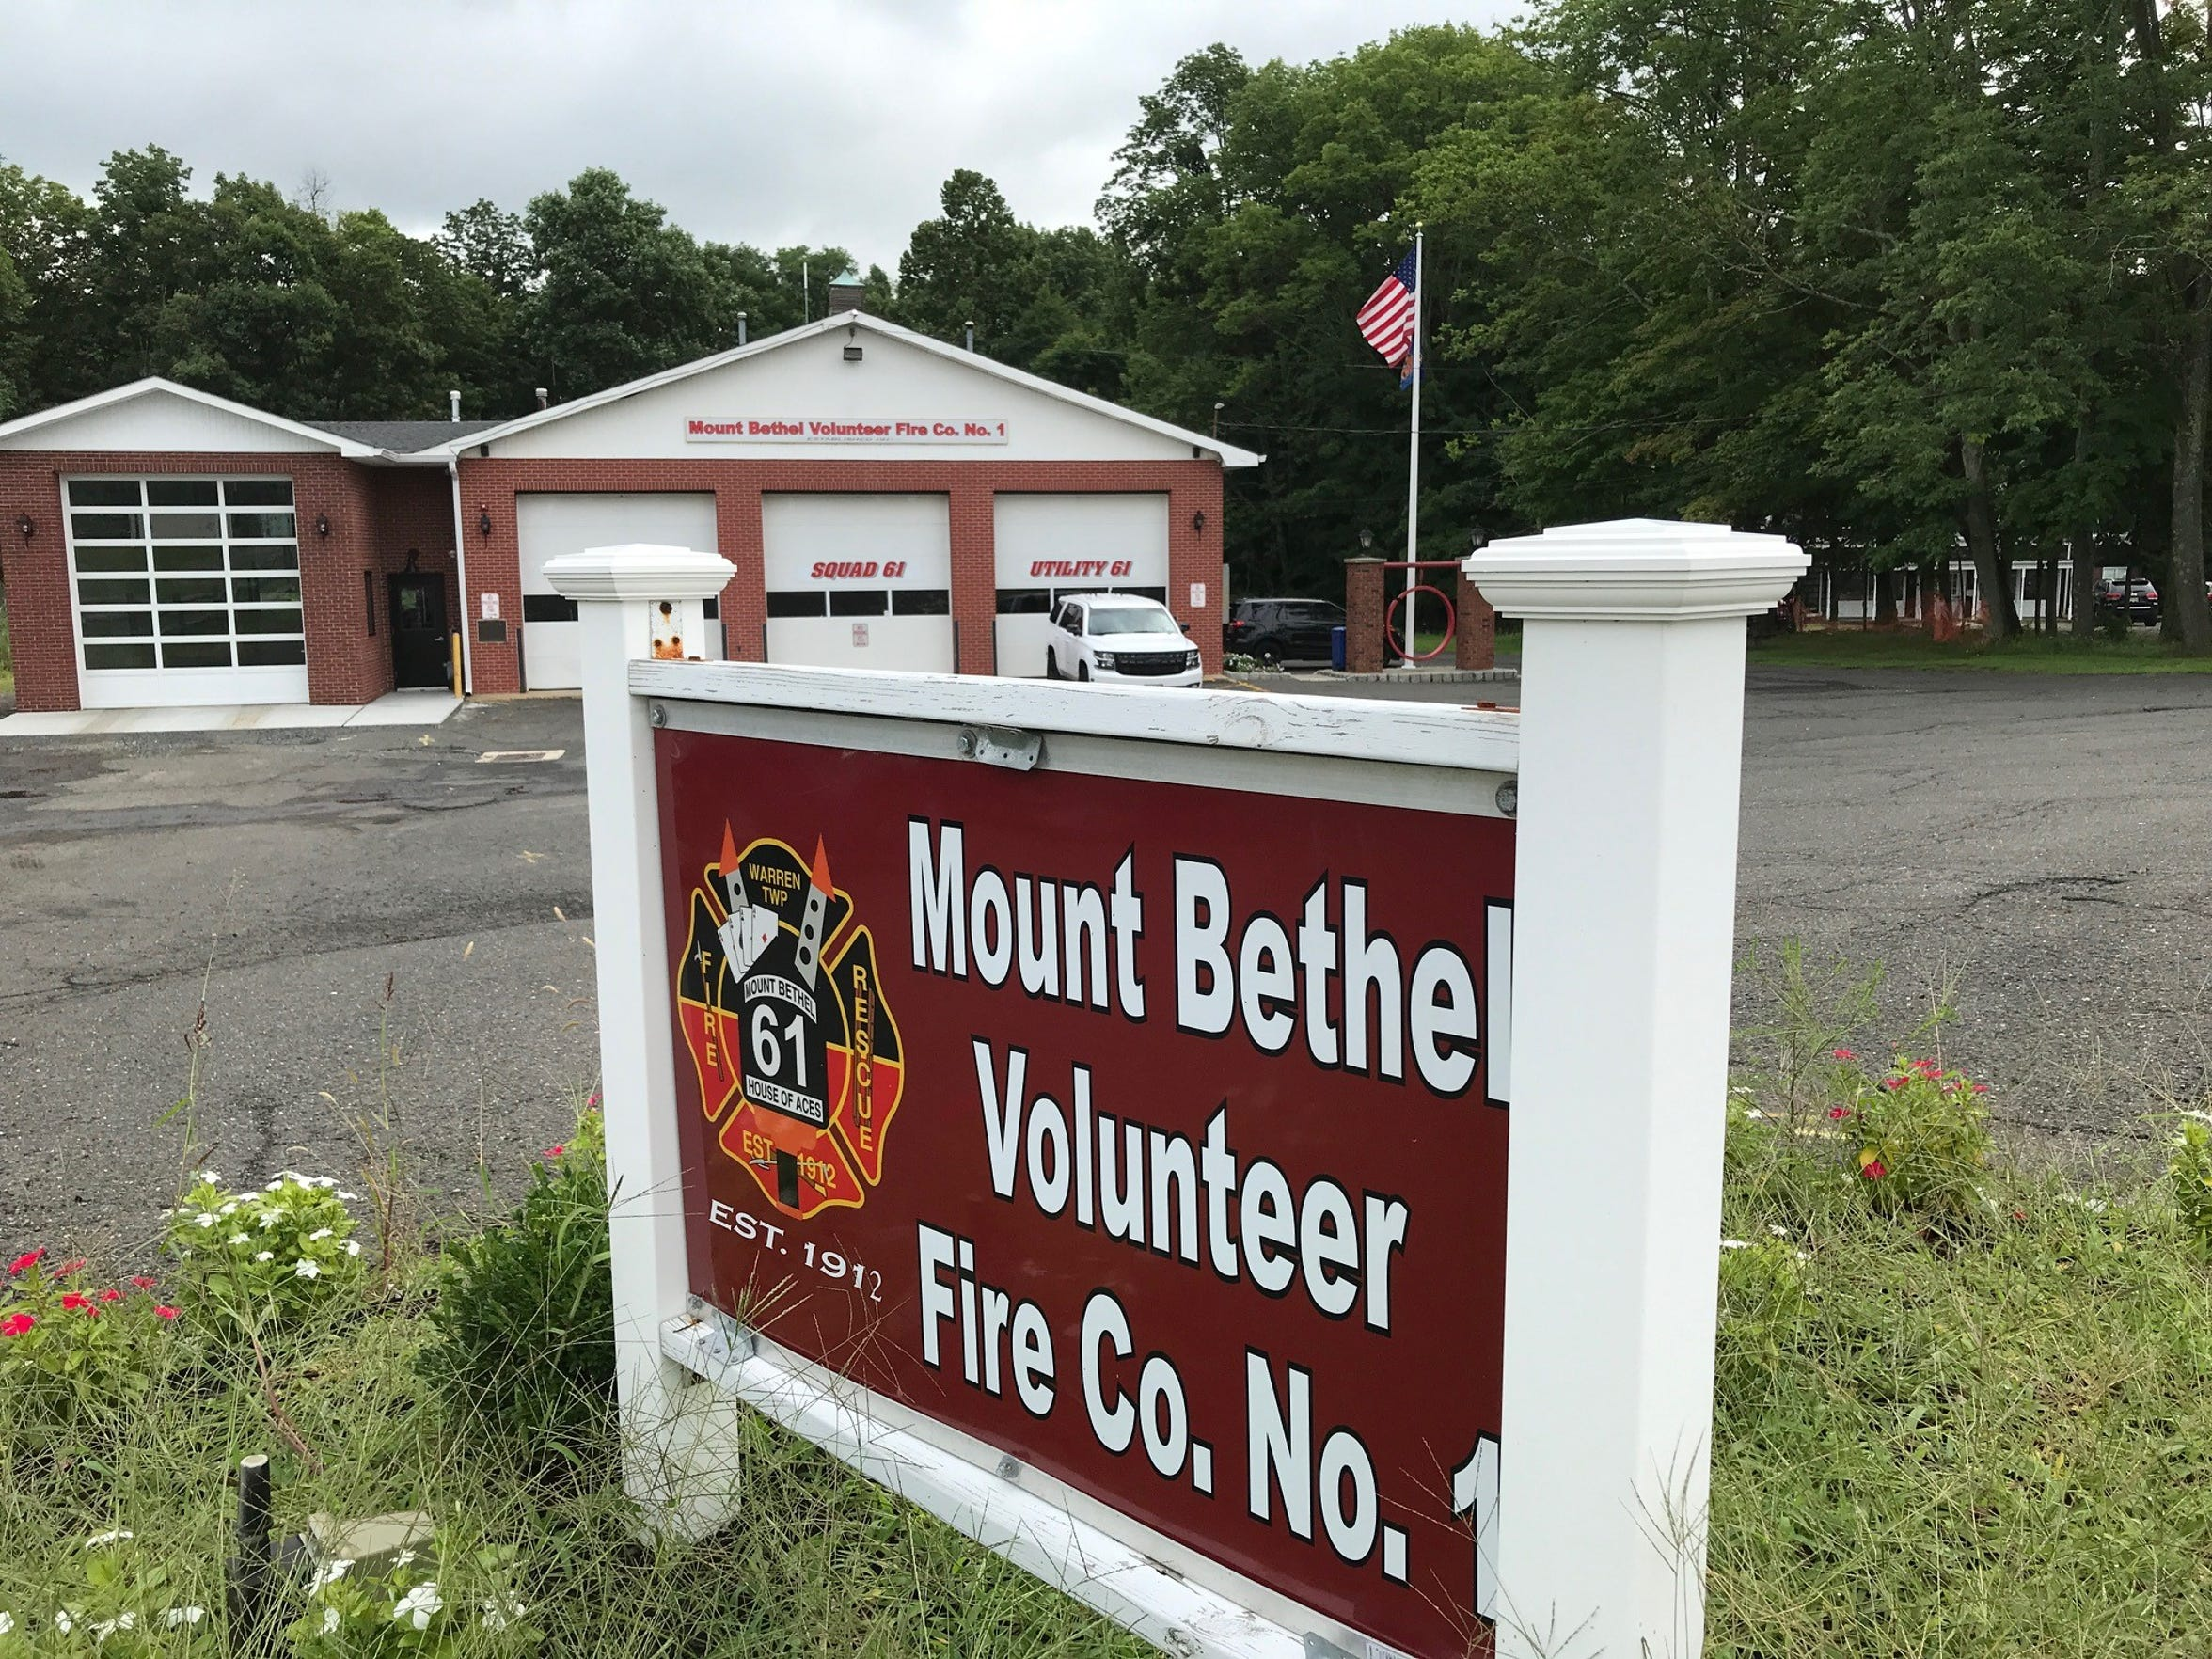 Margaret Haddican-McEnroe was a member of the Mount Bethel Volunteer Fire Company in Warren Township, according to newspaper reports.